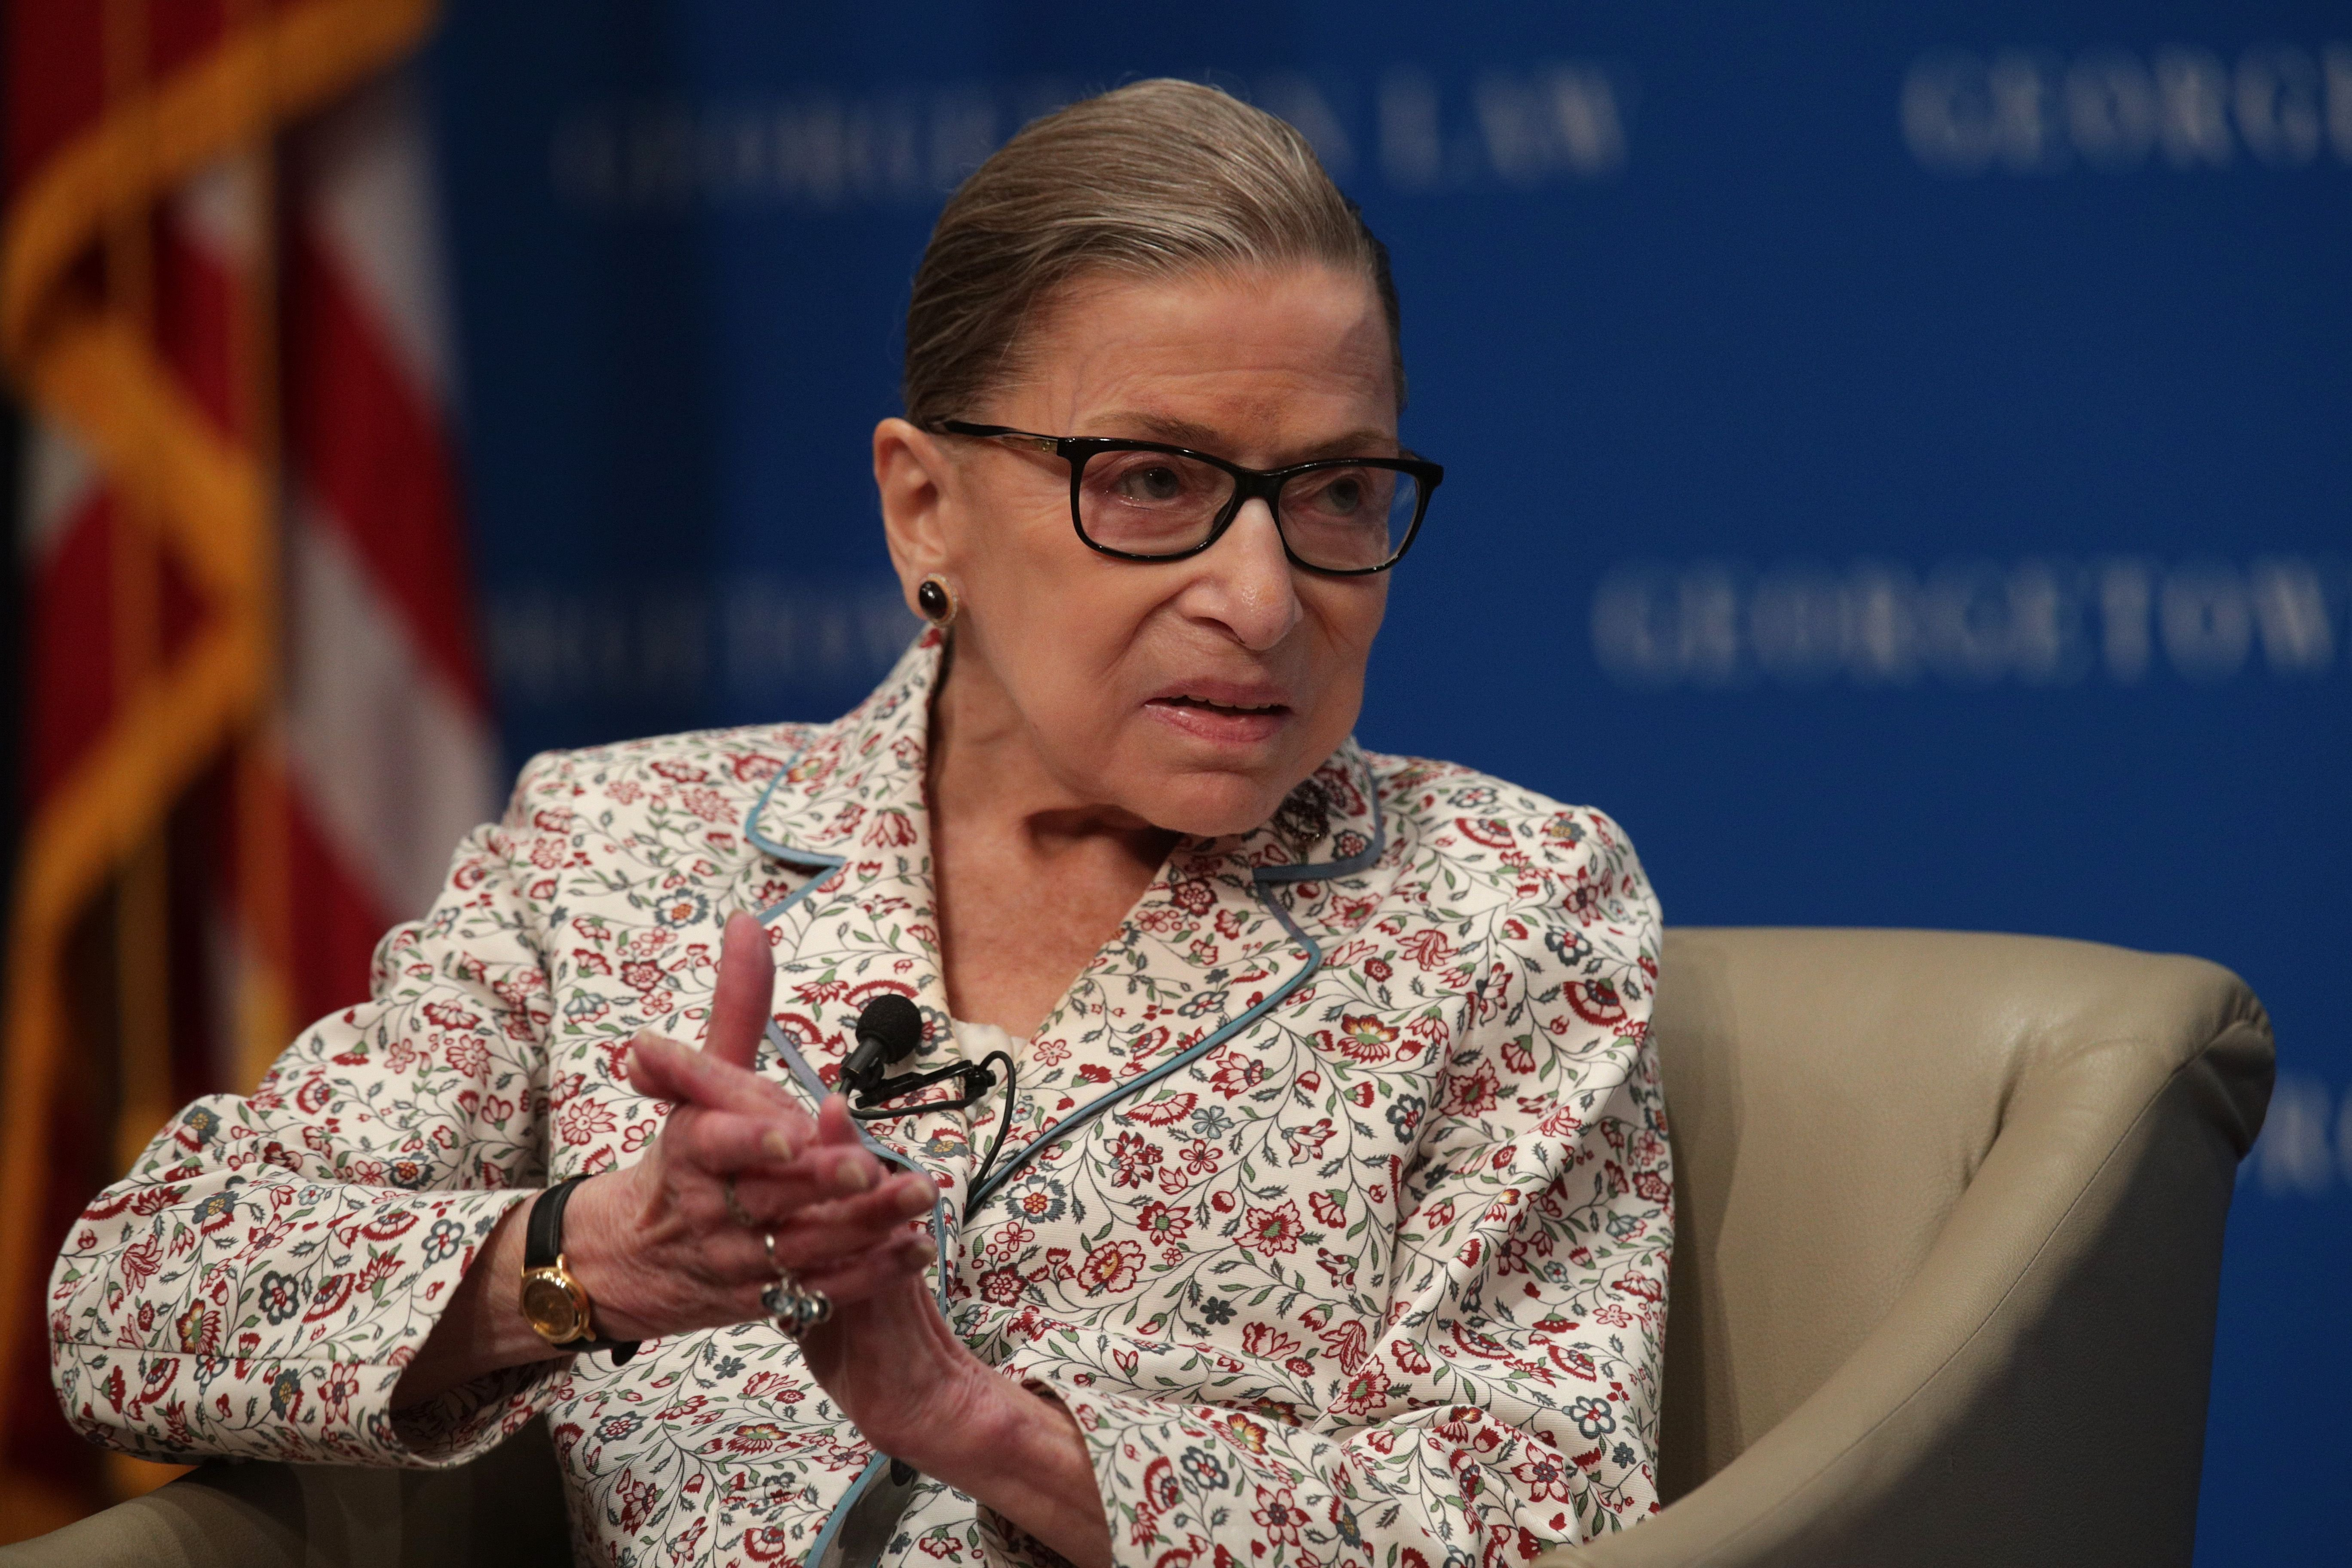 Ruth Bader Ginsburg participates in a discussion at Georgetown University Law Center July 2, 2019 | Photo: Getty Images